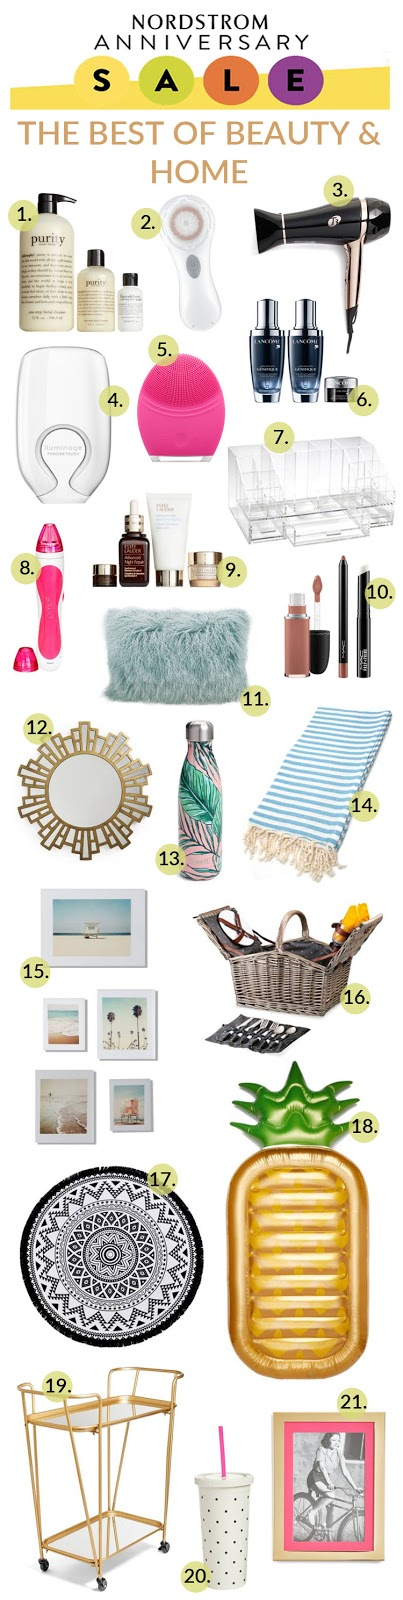 The Best of Nordstrom Home & Beauty Sale Picks by popular blogger Laura of Walking in Memphis in High Heels